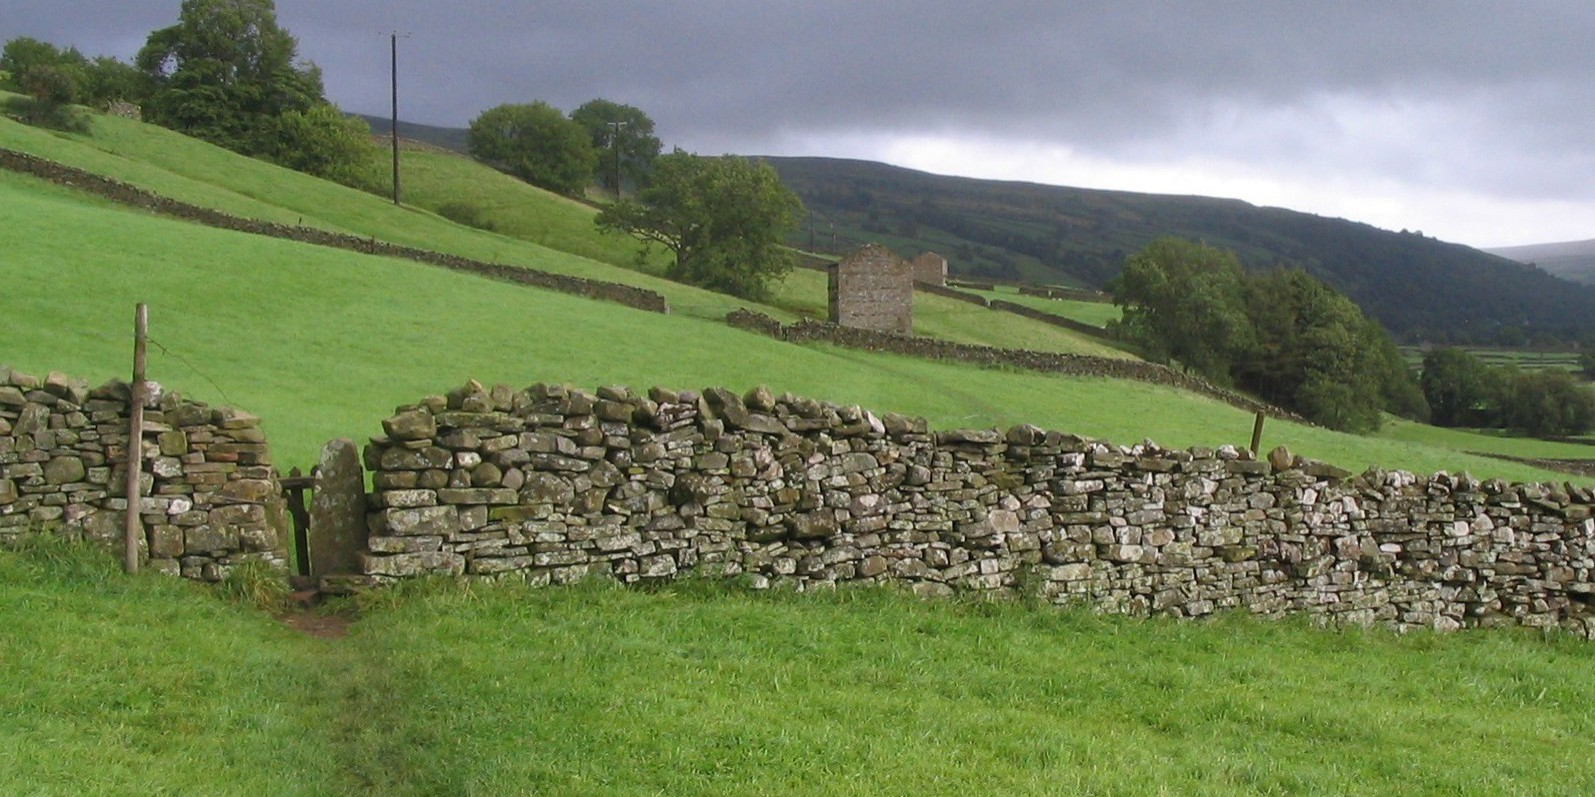 On the way to Reeth. Path goes straight across fields by barns 8/26/2008